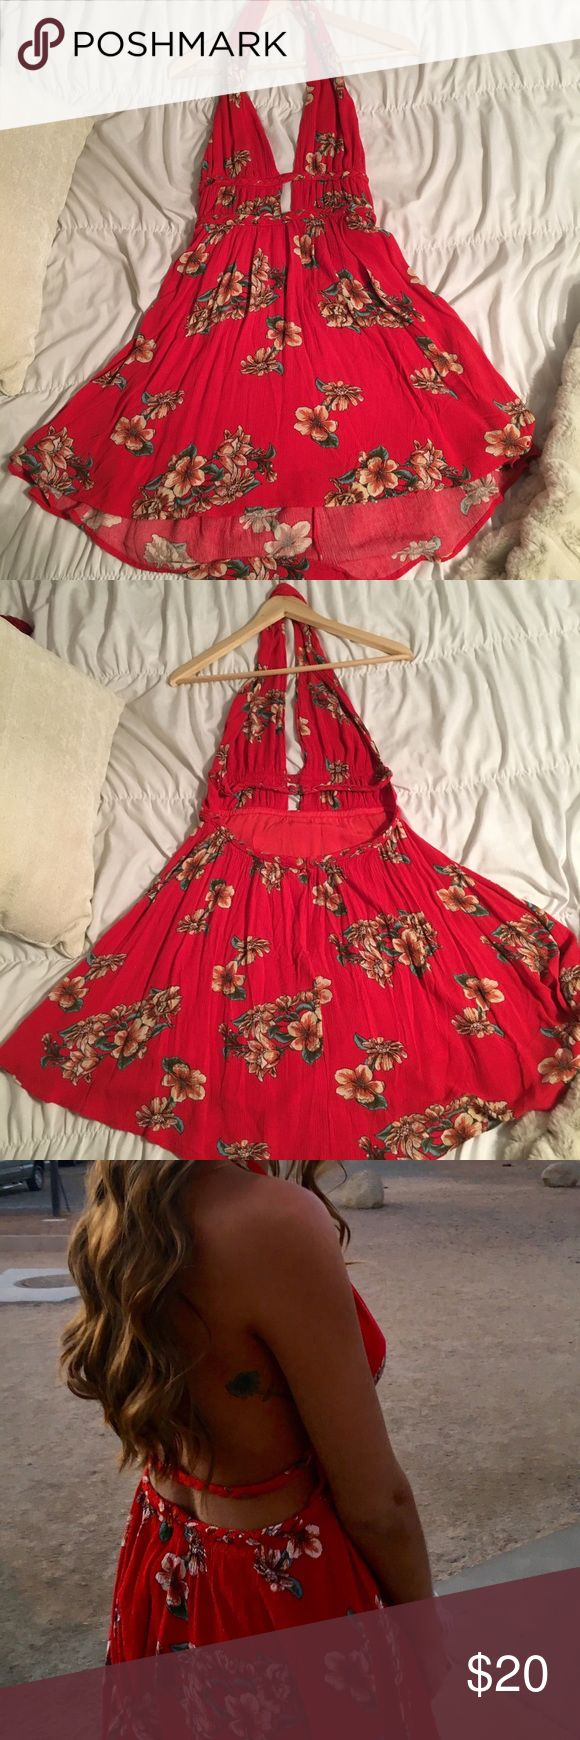 Red dress boutique floral halter dress Gorgeous red dress with floral patterns on it. Halter top with an open back. Only worn once! Dresses